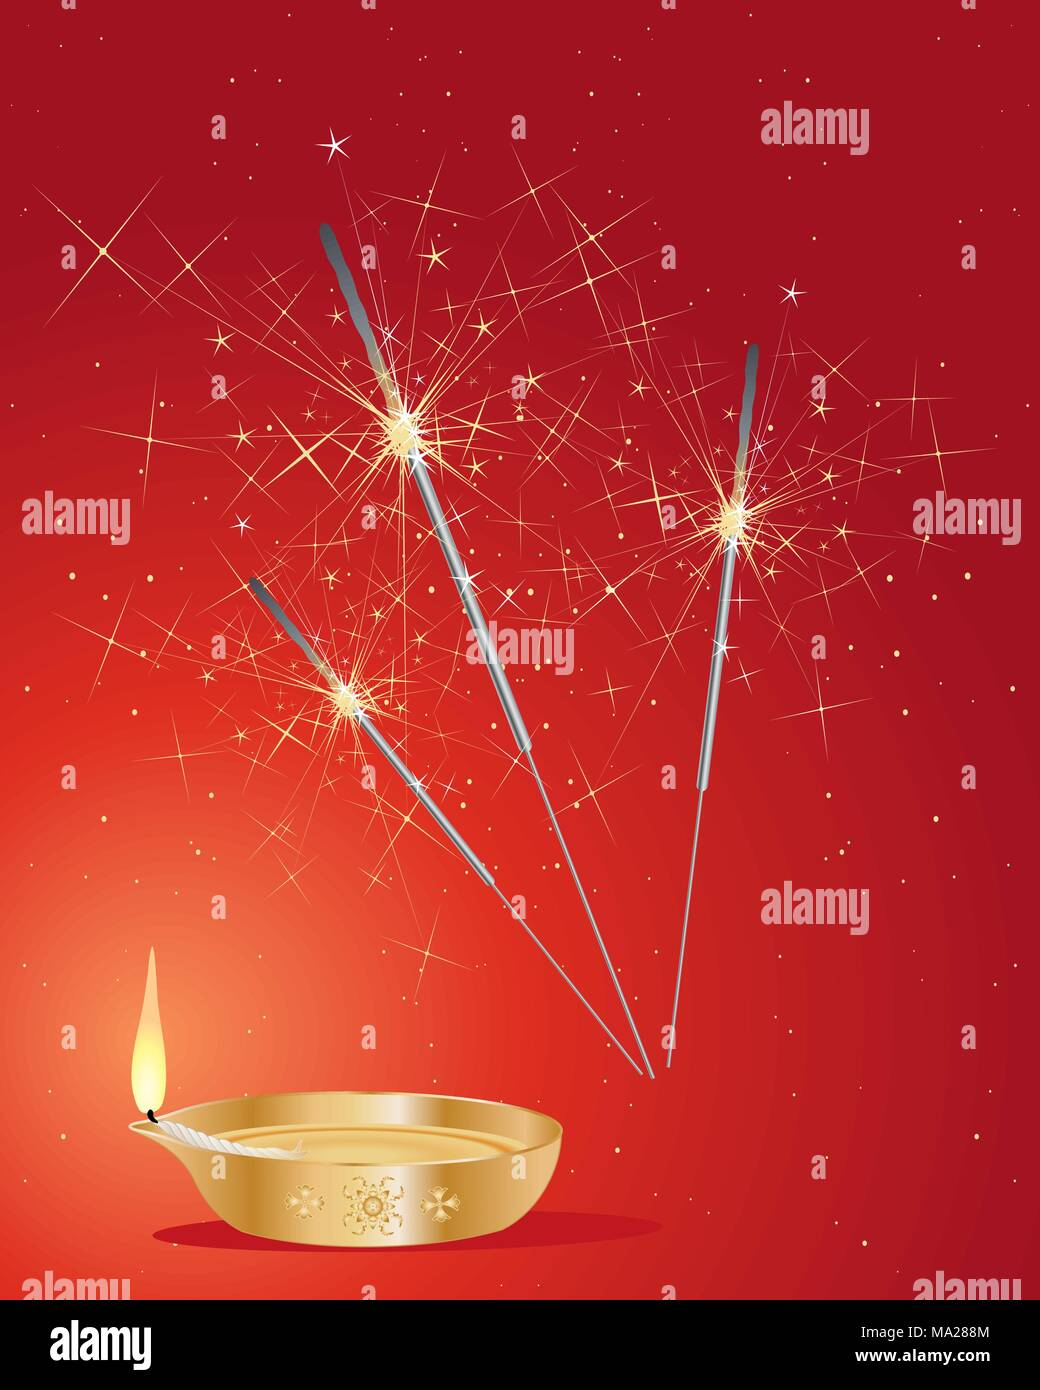 an illustration of festive diwali sparklers with golden lamp and flame on a red background - Stock Vector